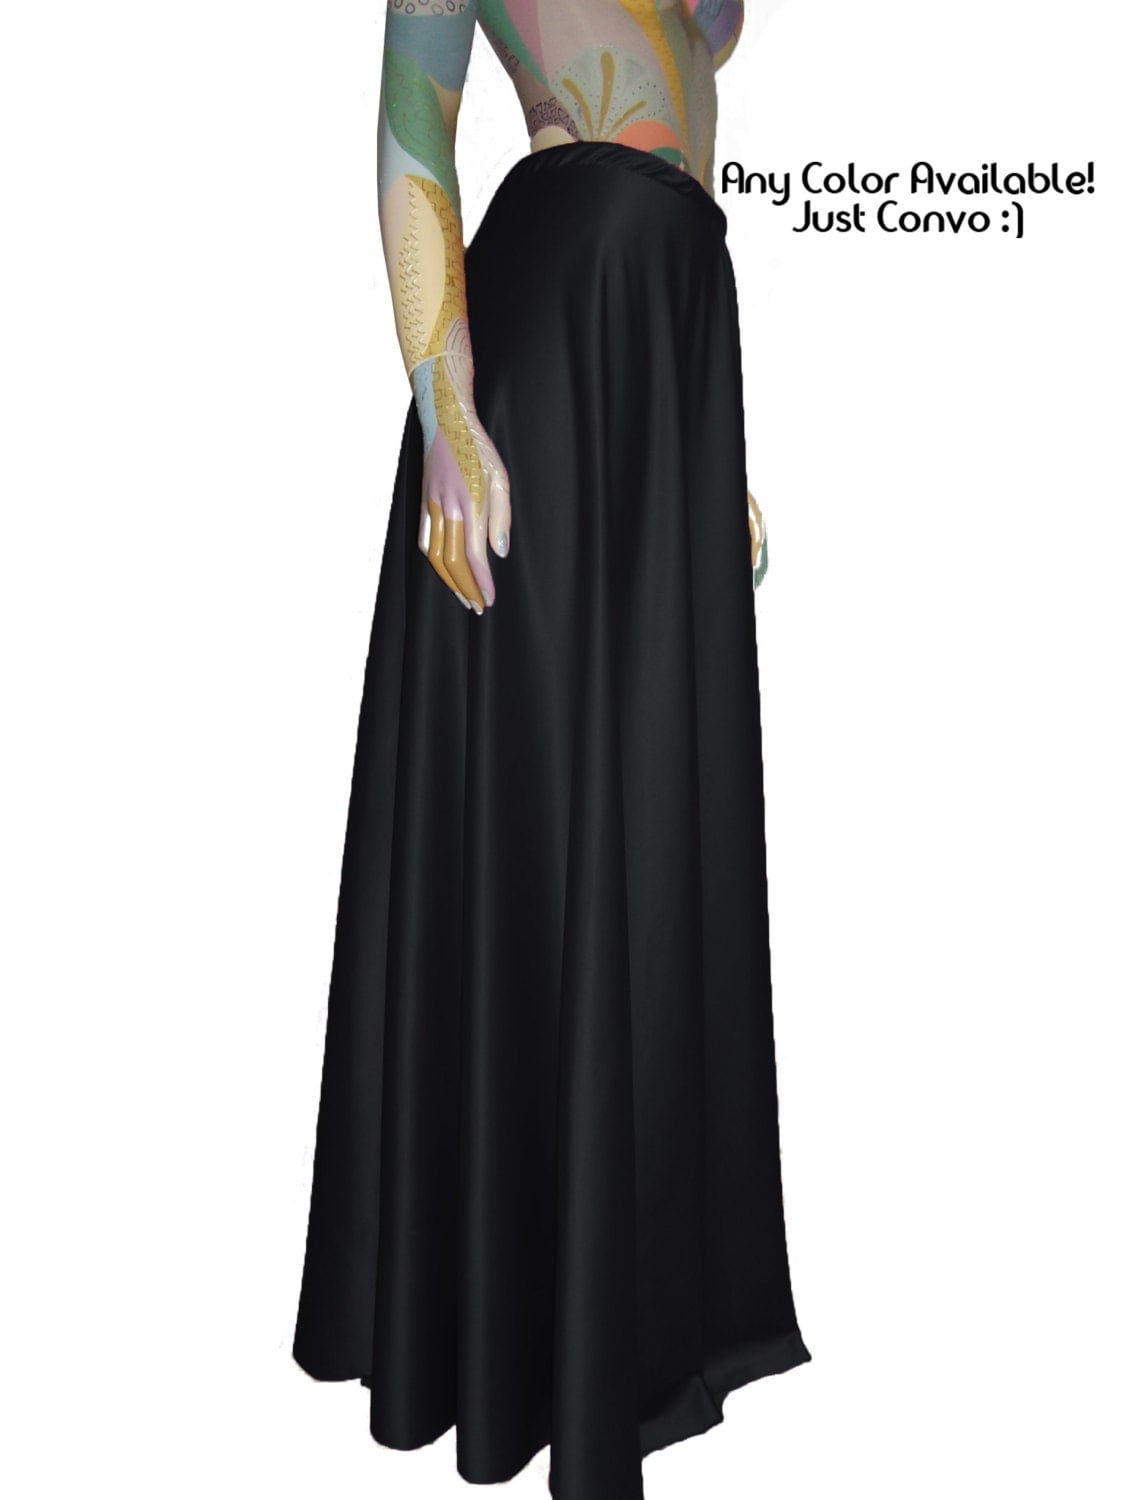 Black Satin Skirt Maxi Formal Flowy Skirt Sizes XS S M L